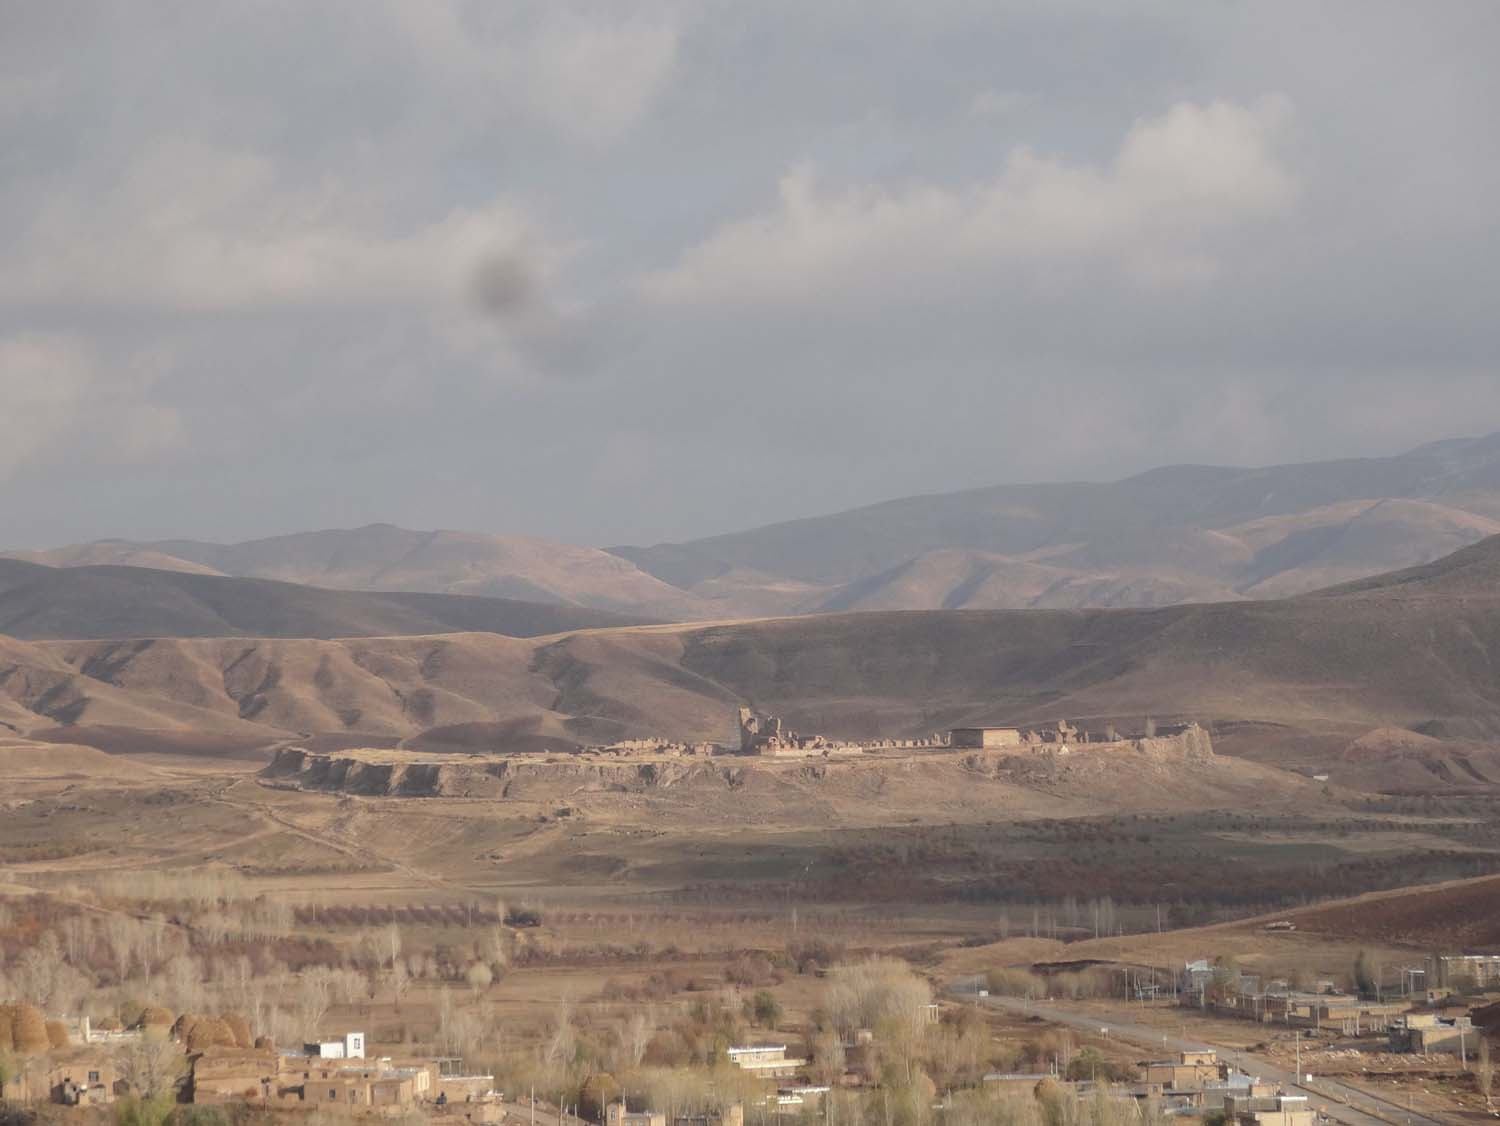 view of Takht-e-Soleyman from the prison volcano